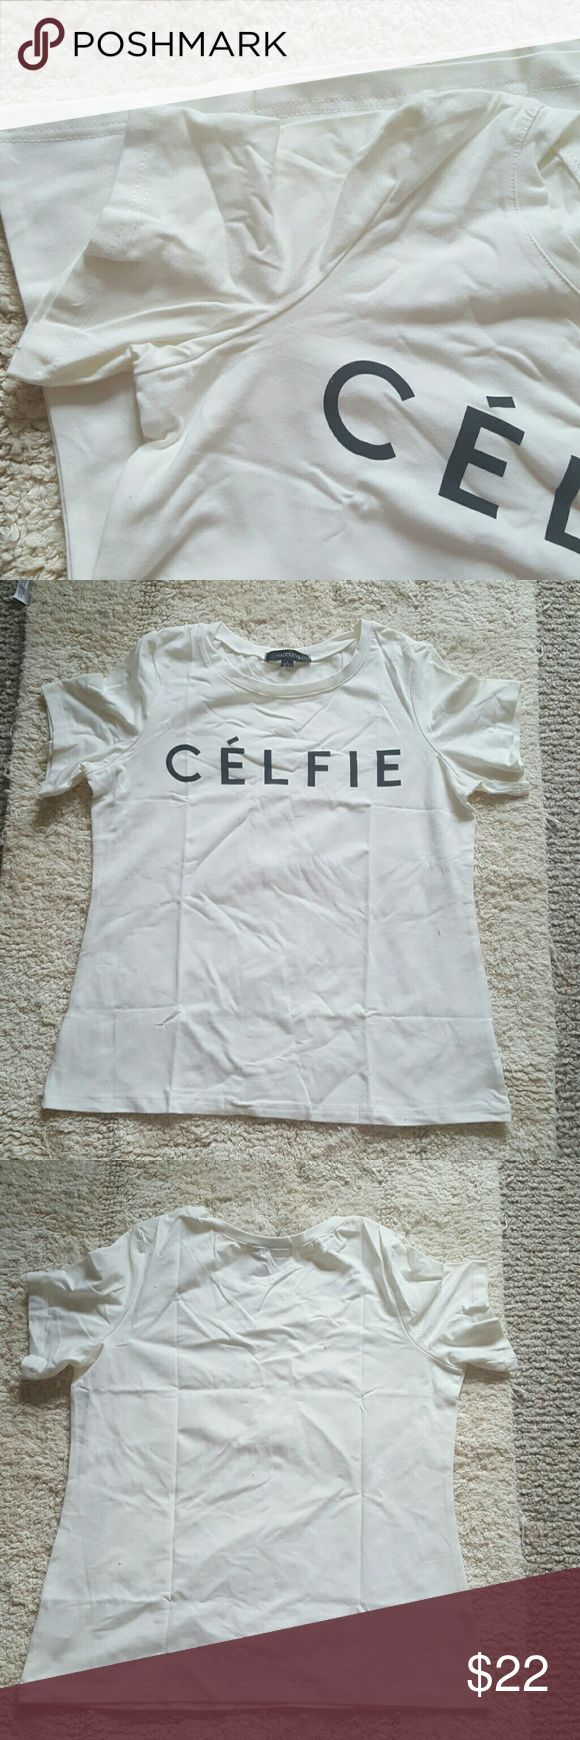 BLACK FRIDAY SALE White top sizes large med and small available brand new Tops Tees - Short Sleeve